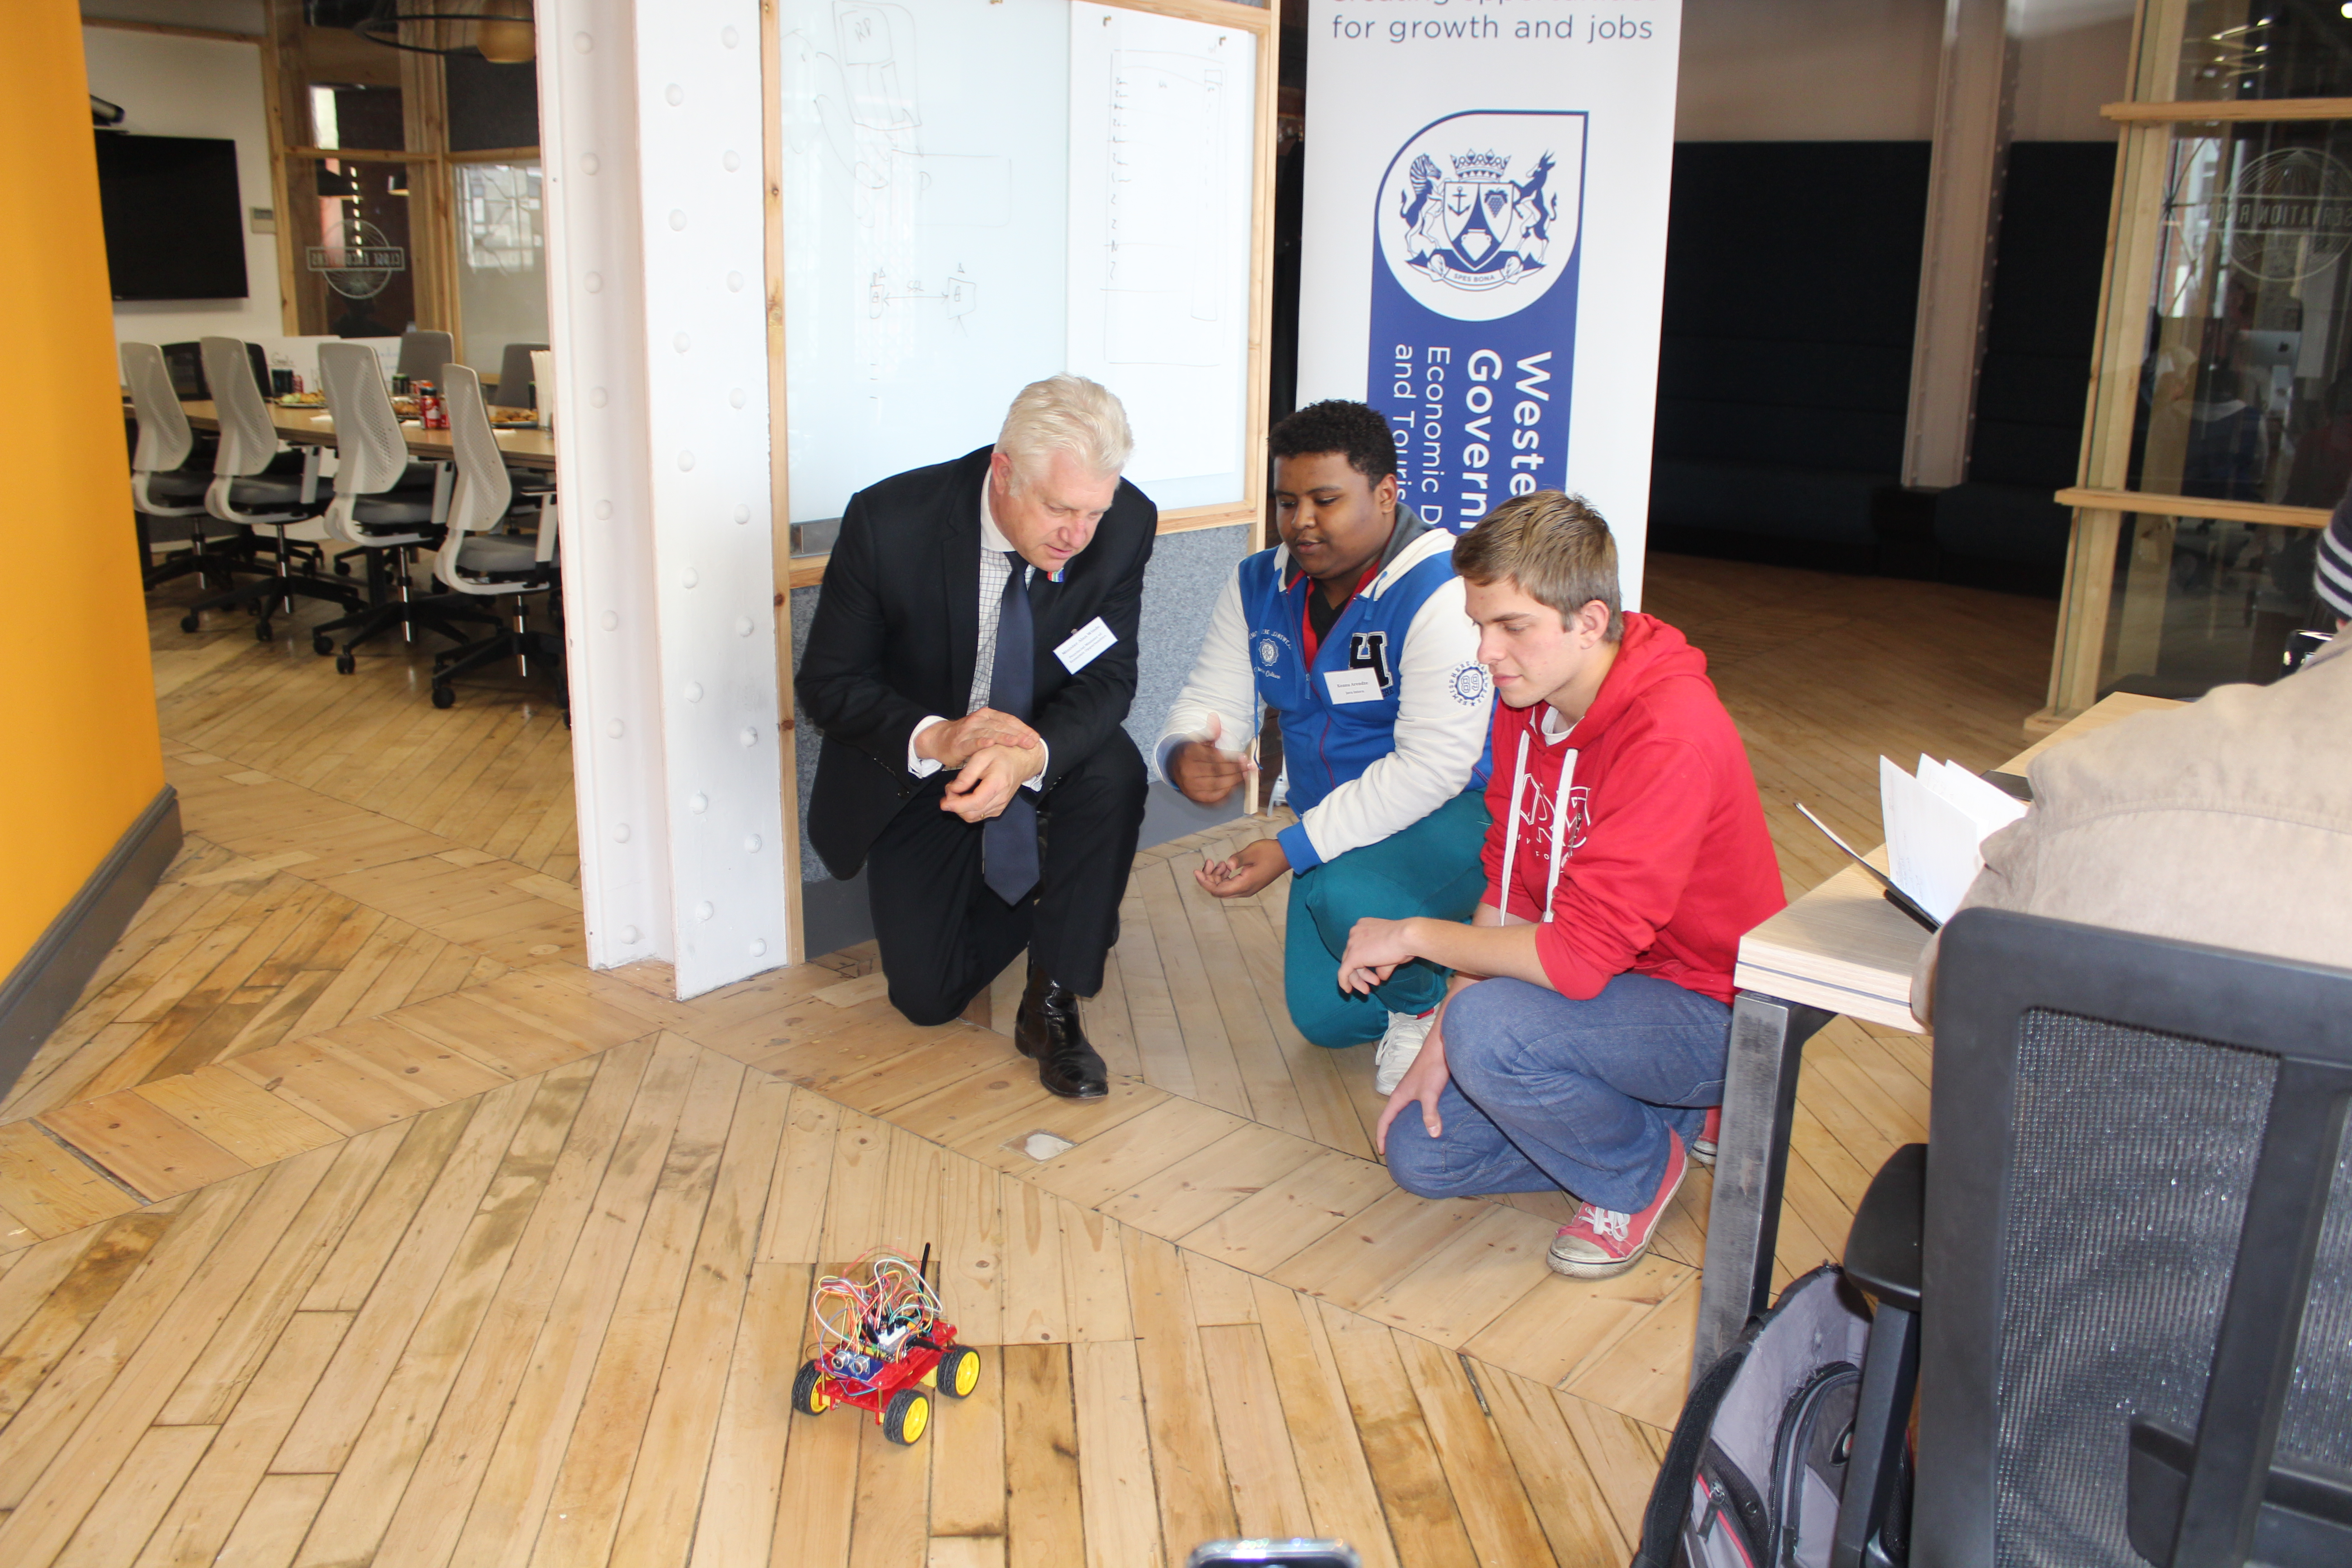 Minister Winde watches on as Keanu Arendze and Rossouw Binedell demonstrate one of their innovations.